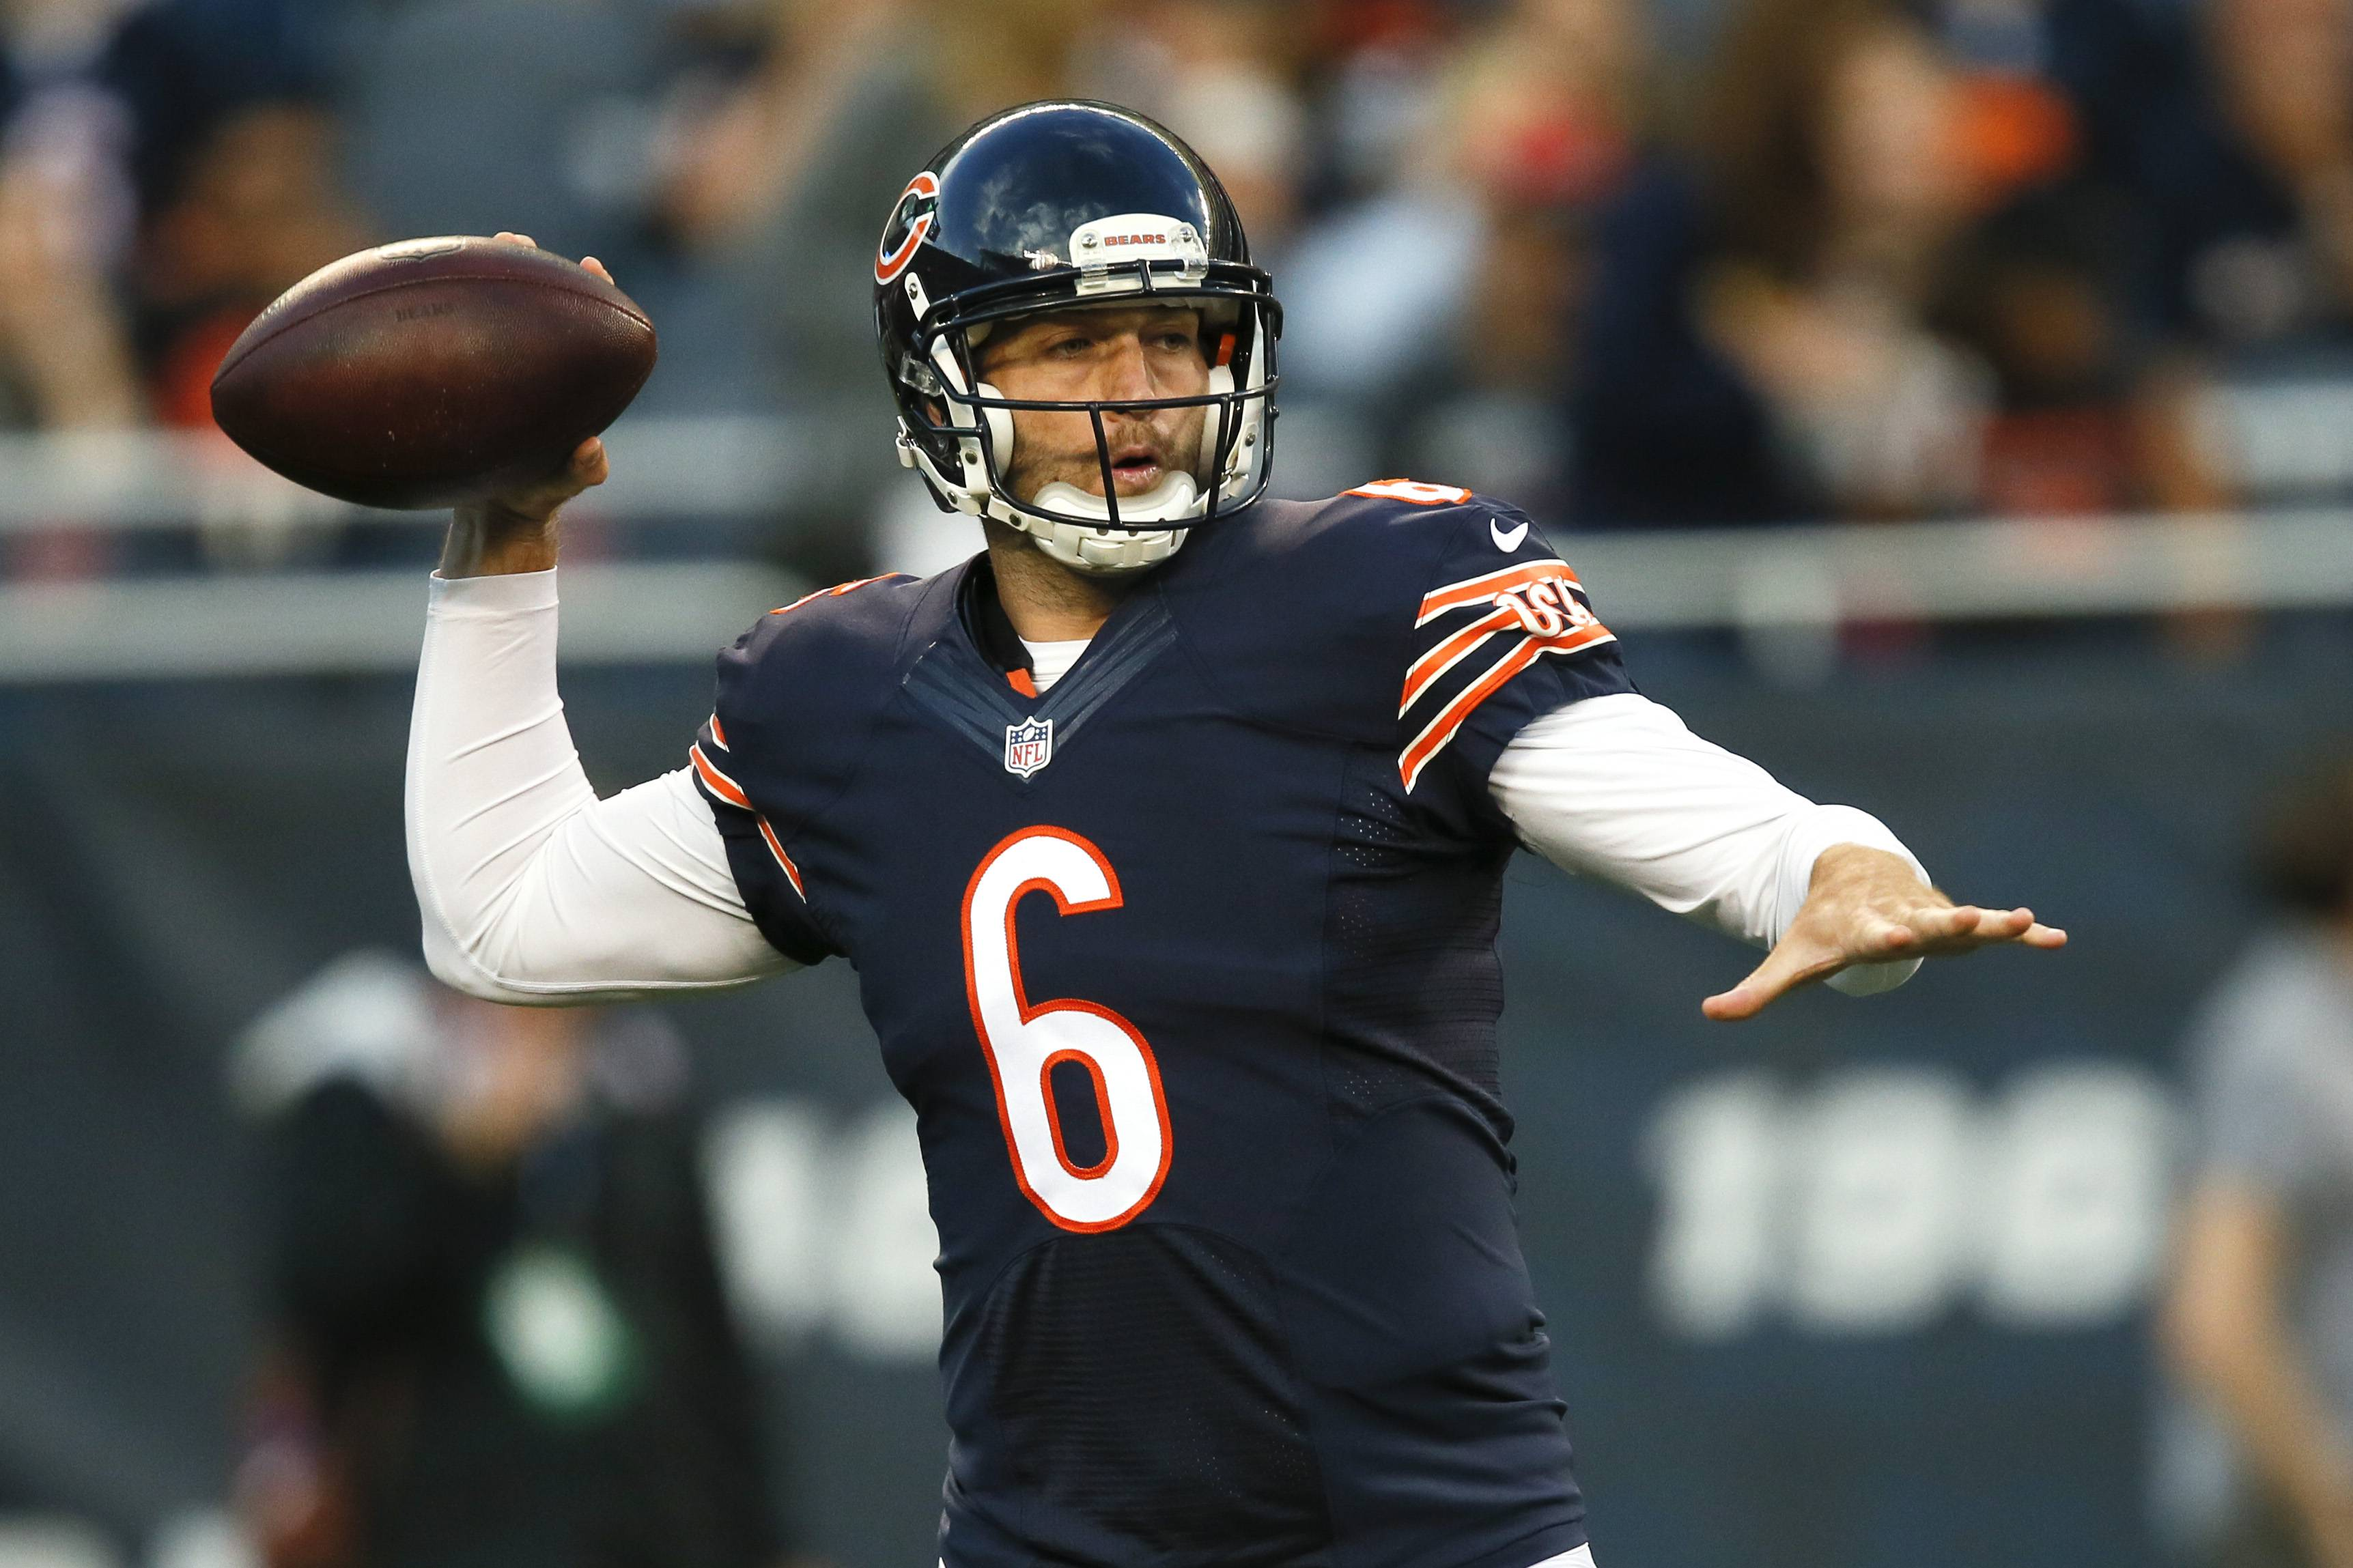 Bears quarterback Jay Cutler (6) passes during the first half of an NFL preseason football game against the Jacksonville Jaguars in Chicago, Thursday, Aug. 14, 2014.